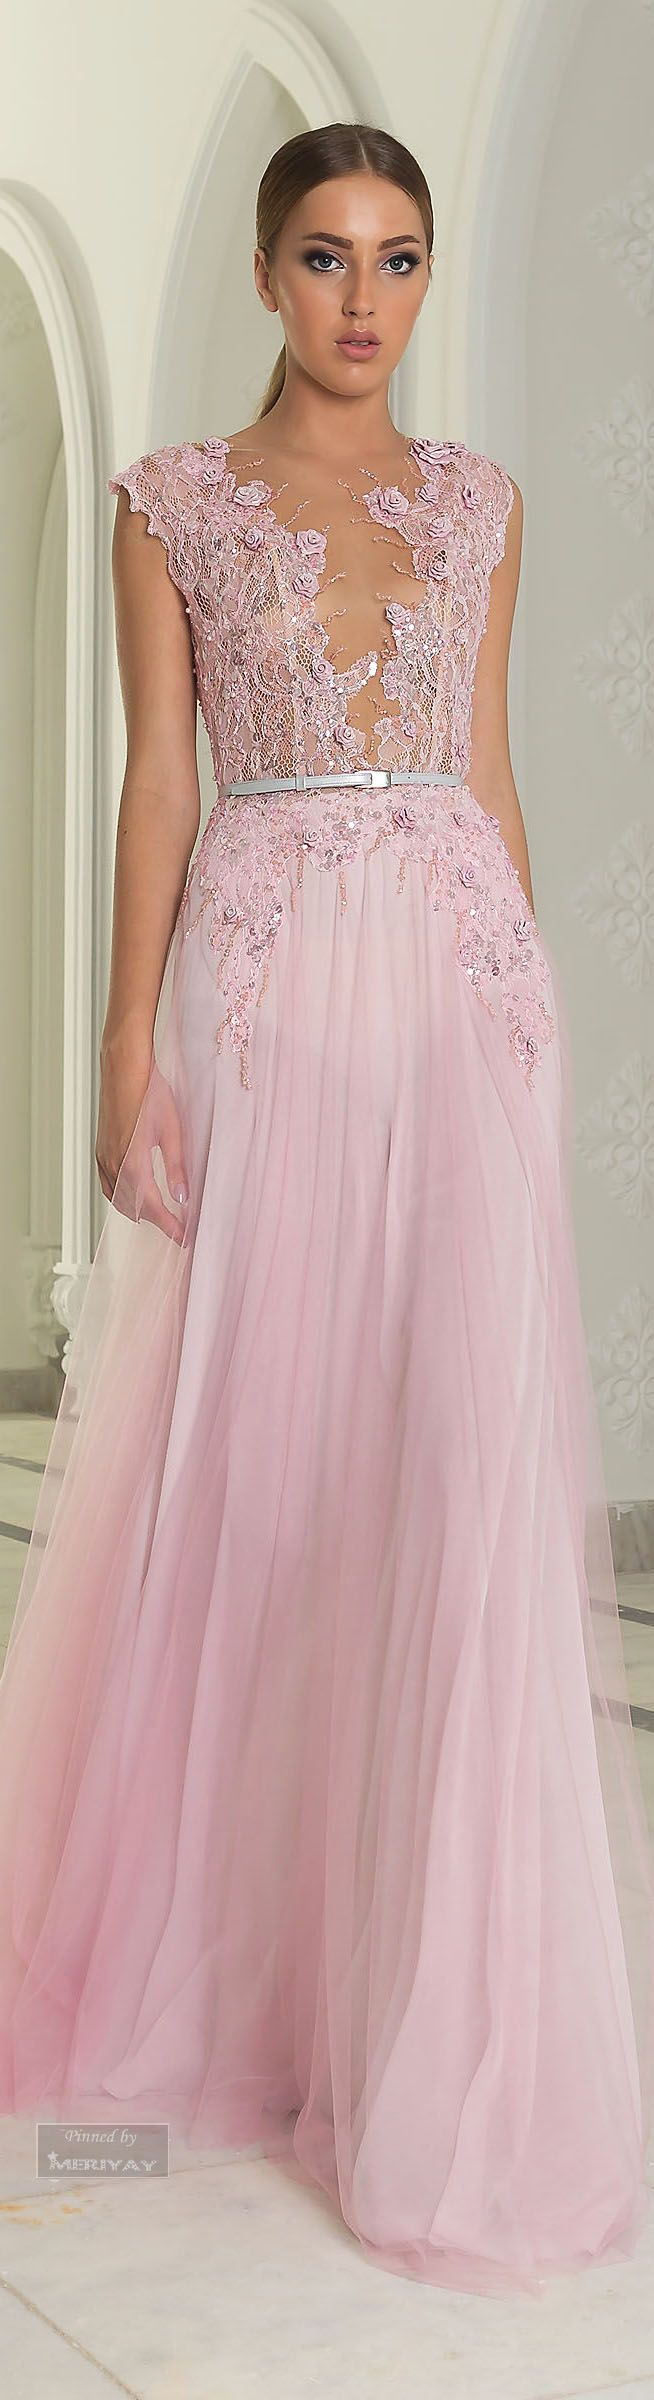 Pretty in Pink, A collection of 13 beautiful pink dresses, click to ...